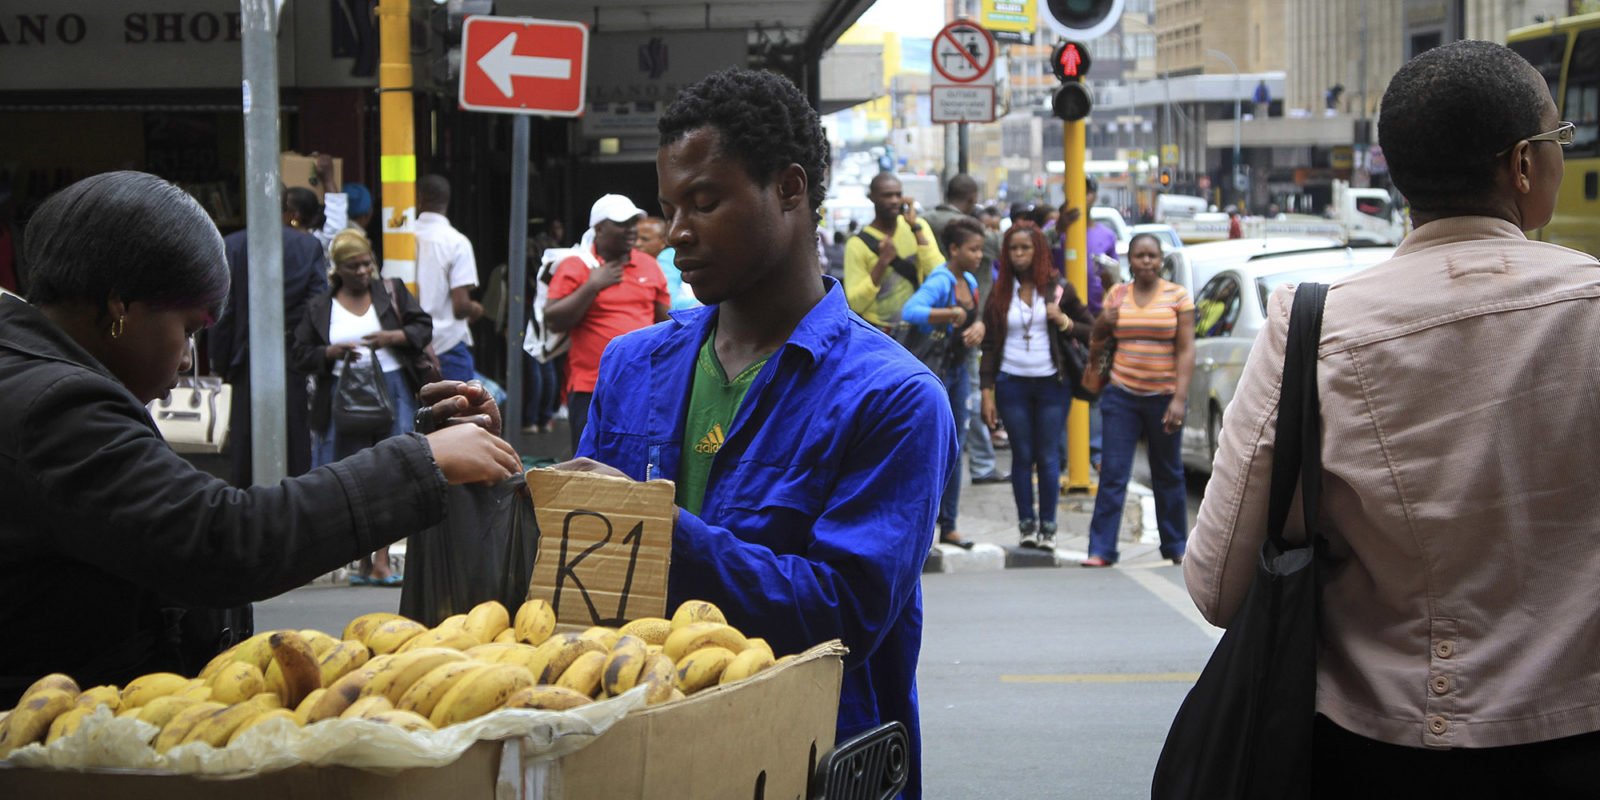 A resilient informal sector is more crucial than ever